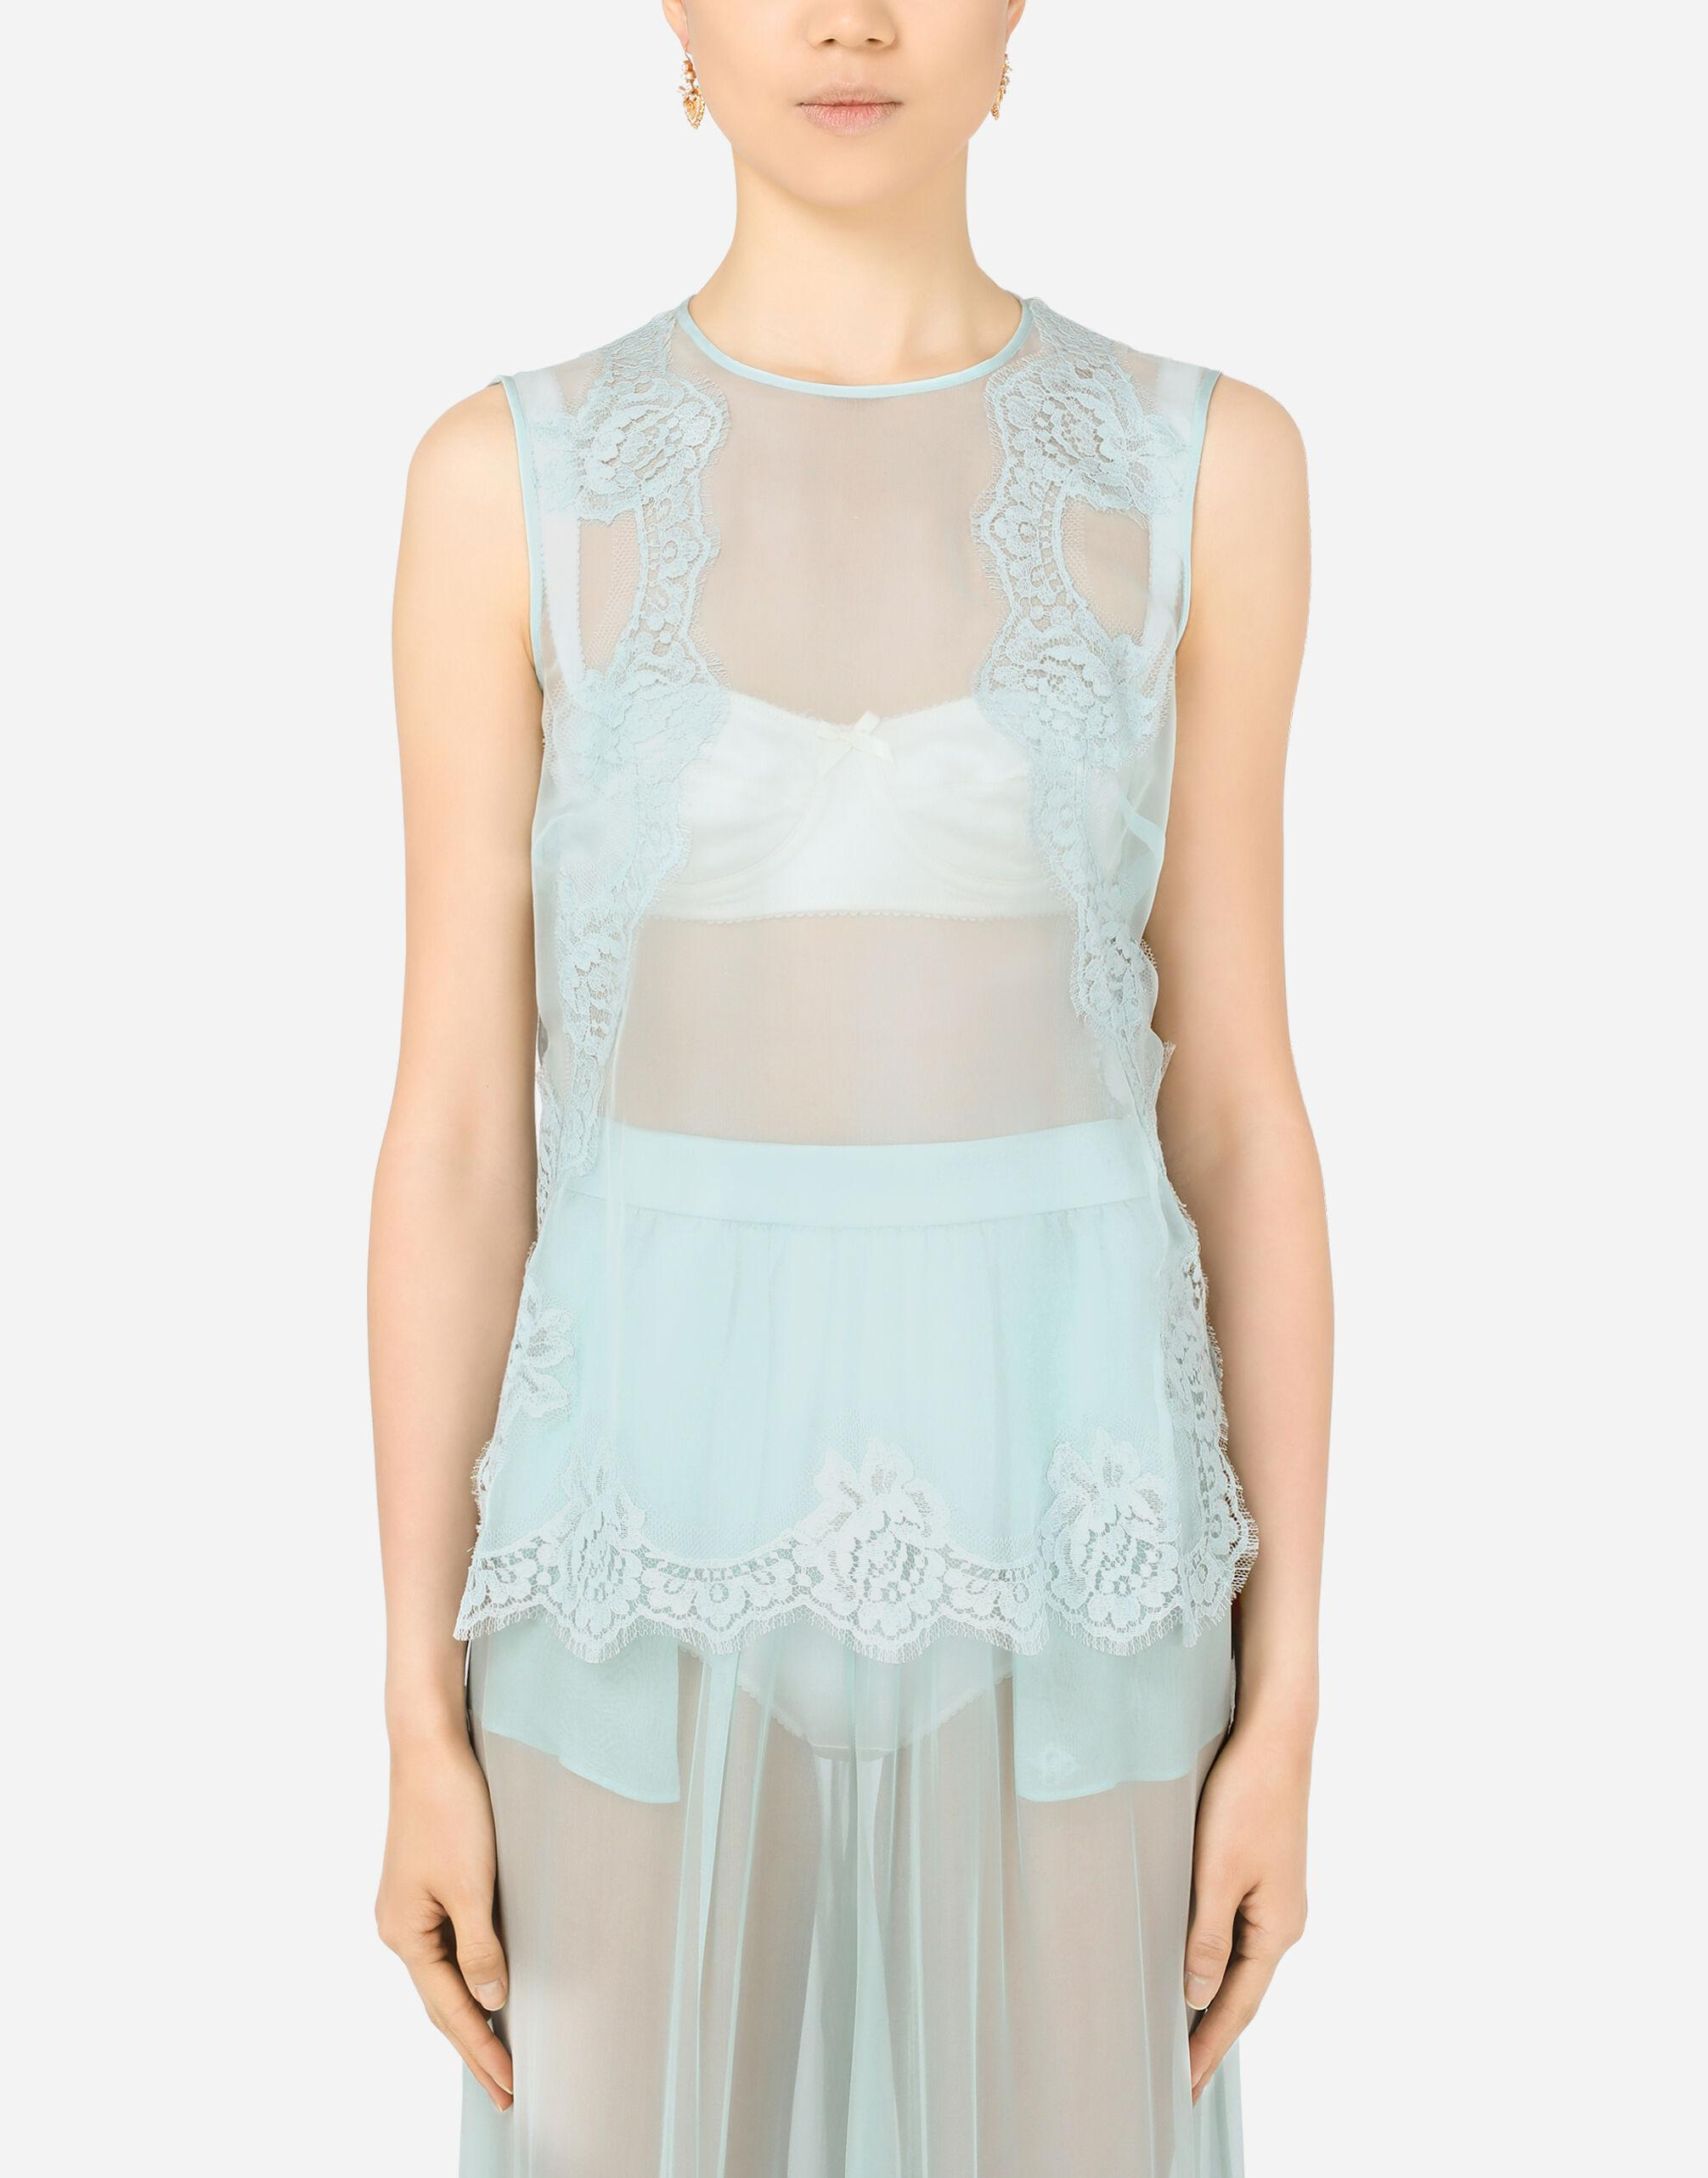 Chifffon top with lace